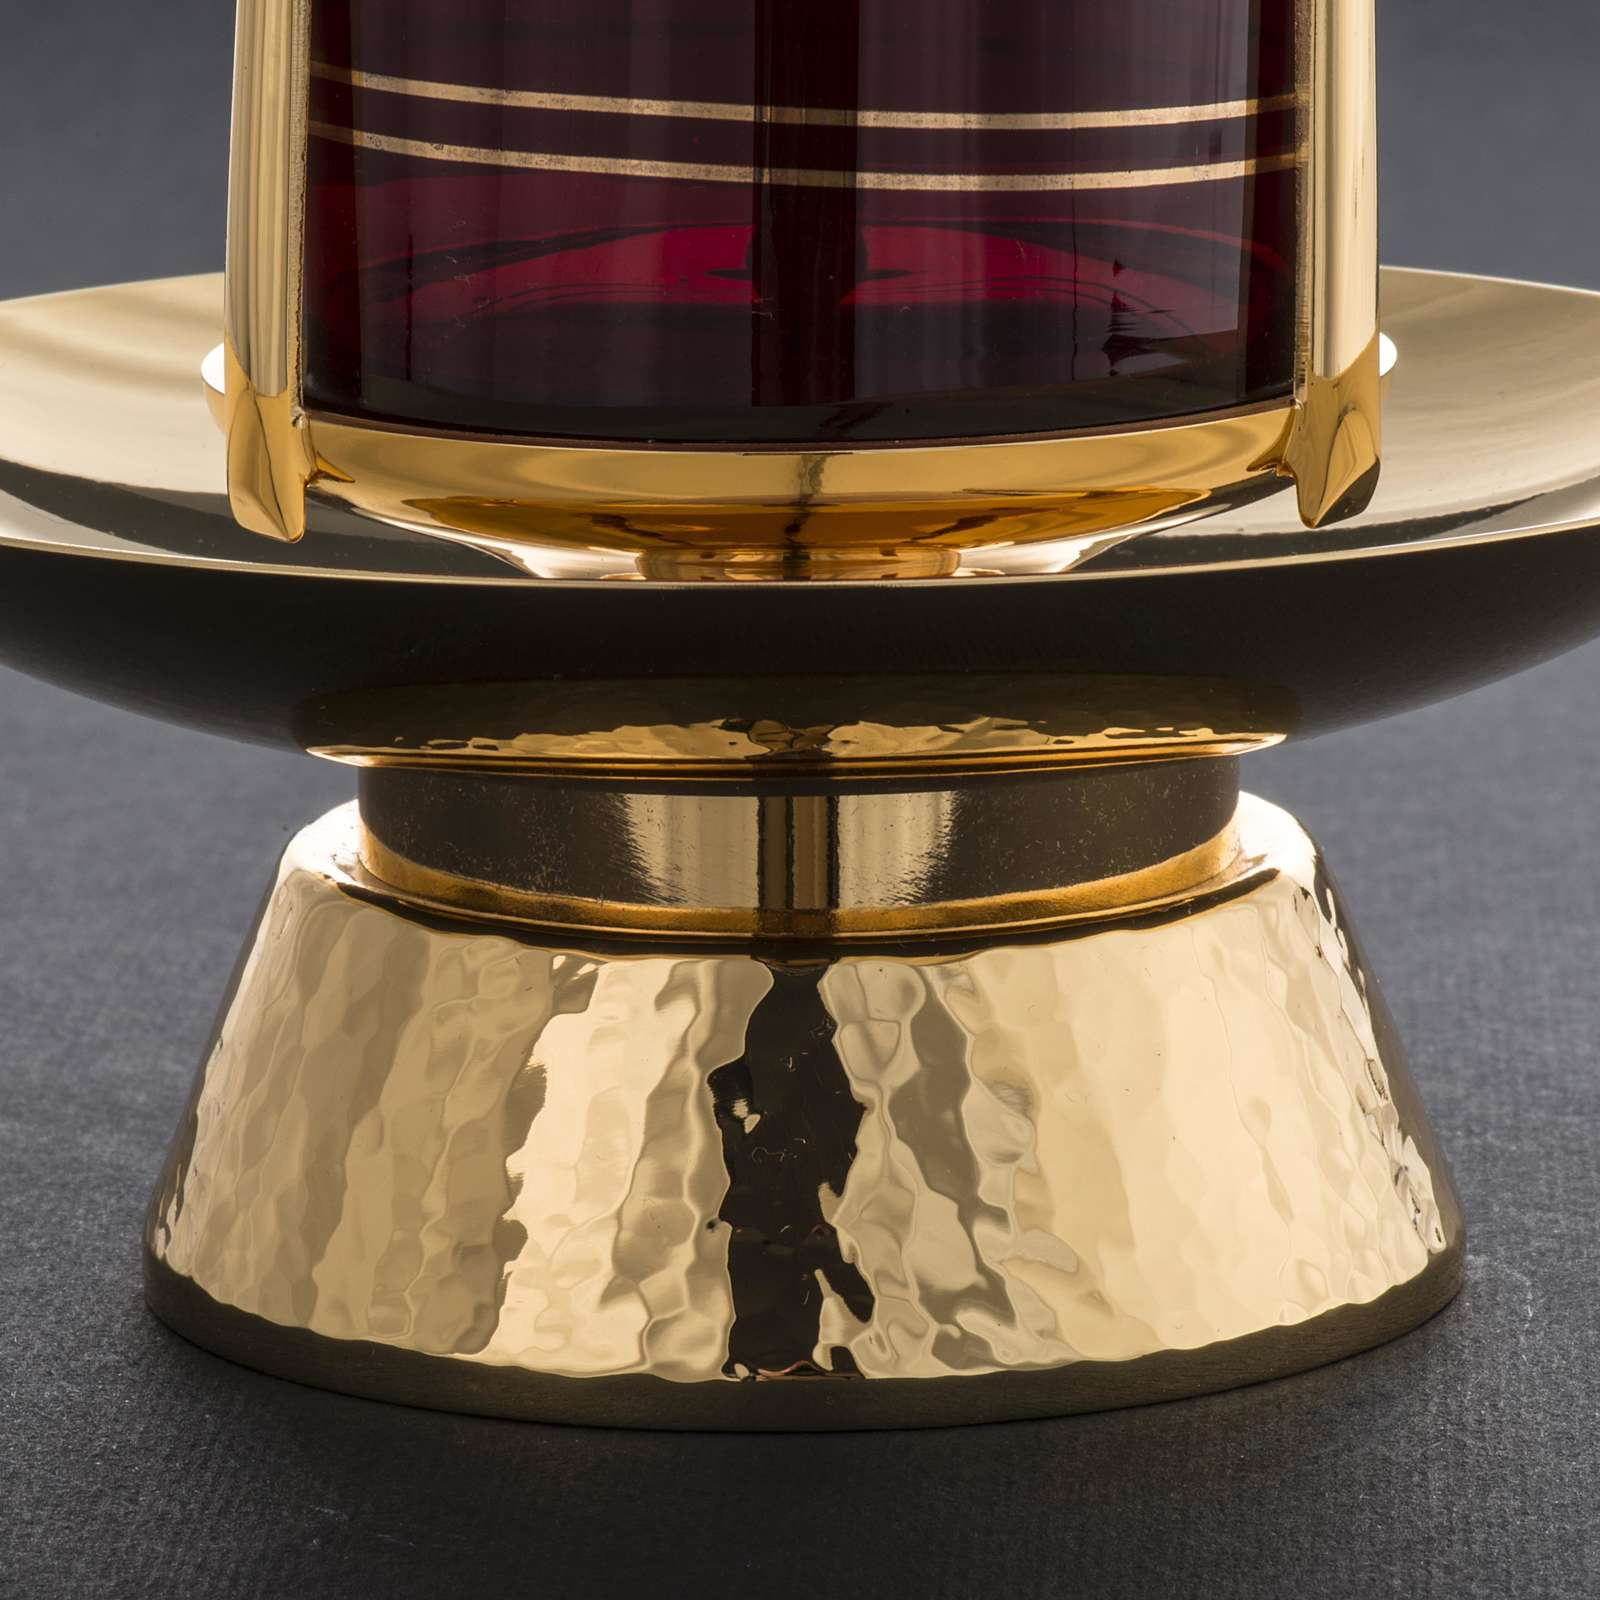 Foot for Blessed Sacrament glass, gold-plated brass 3